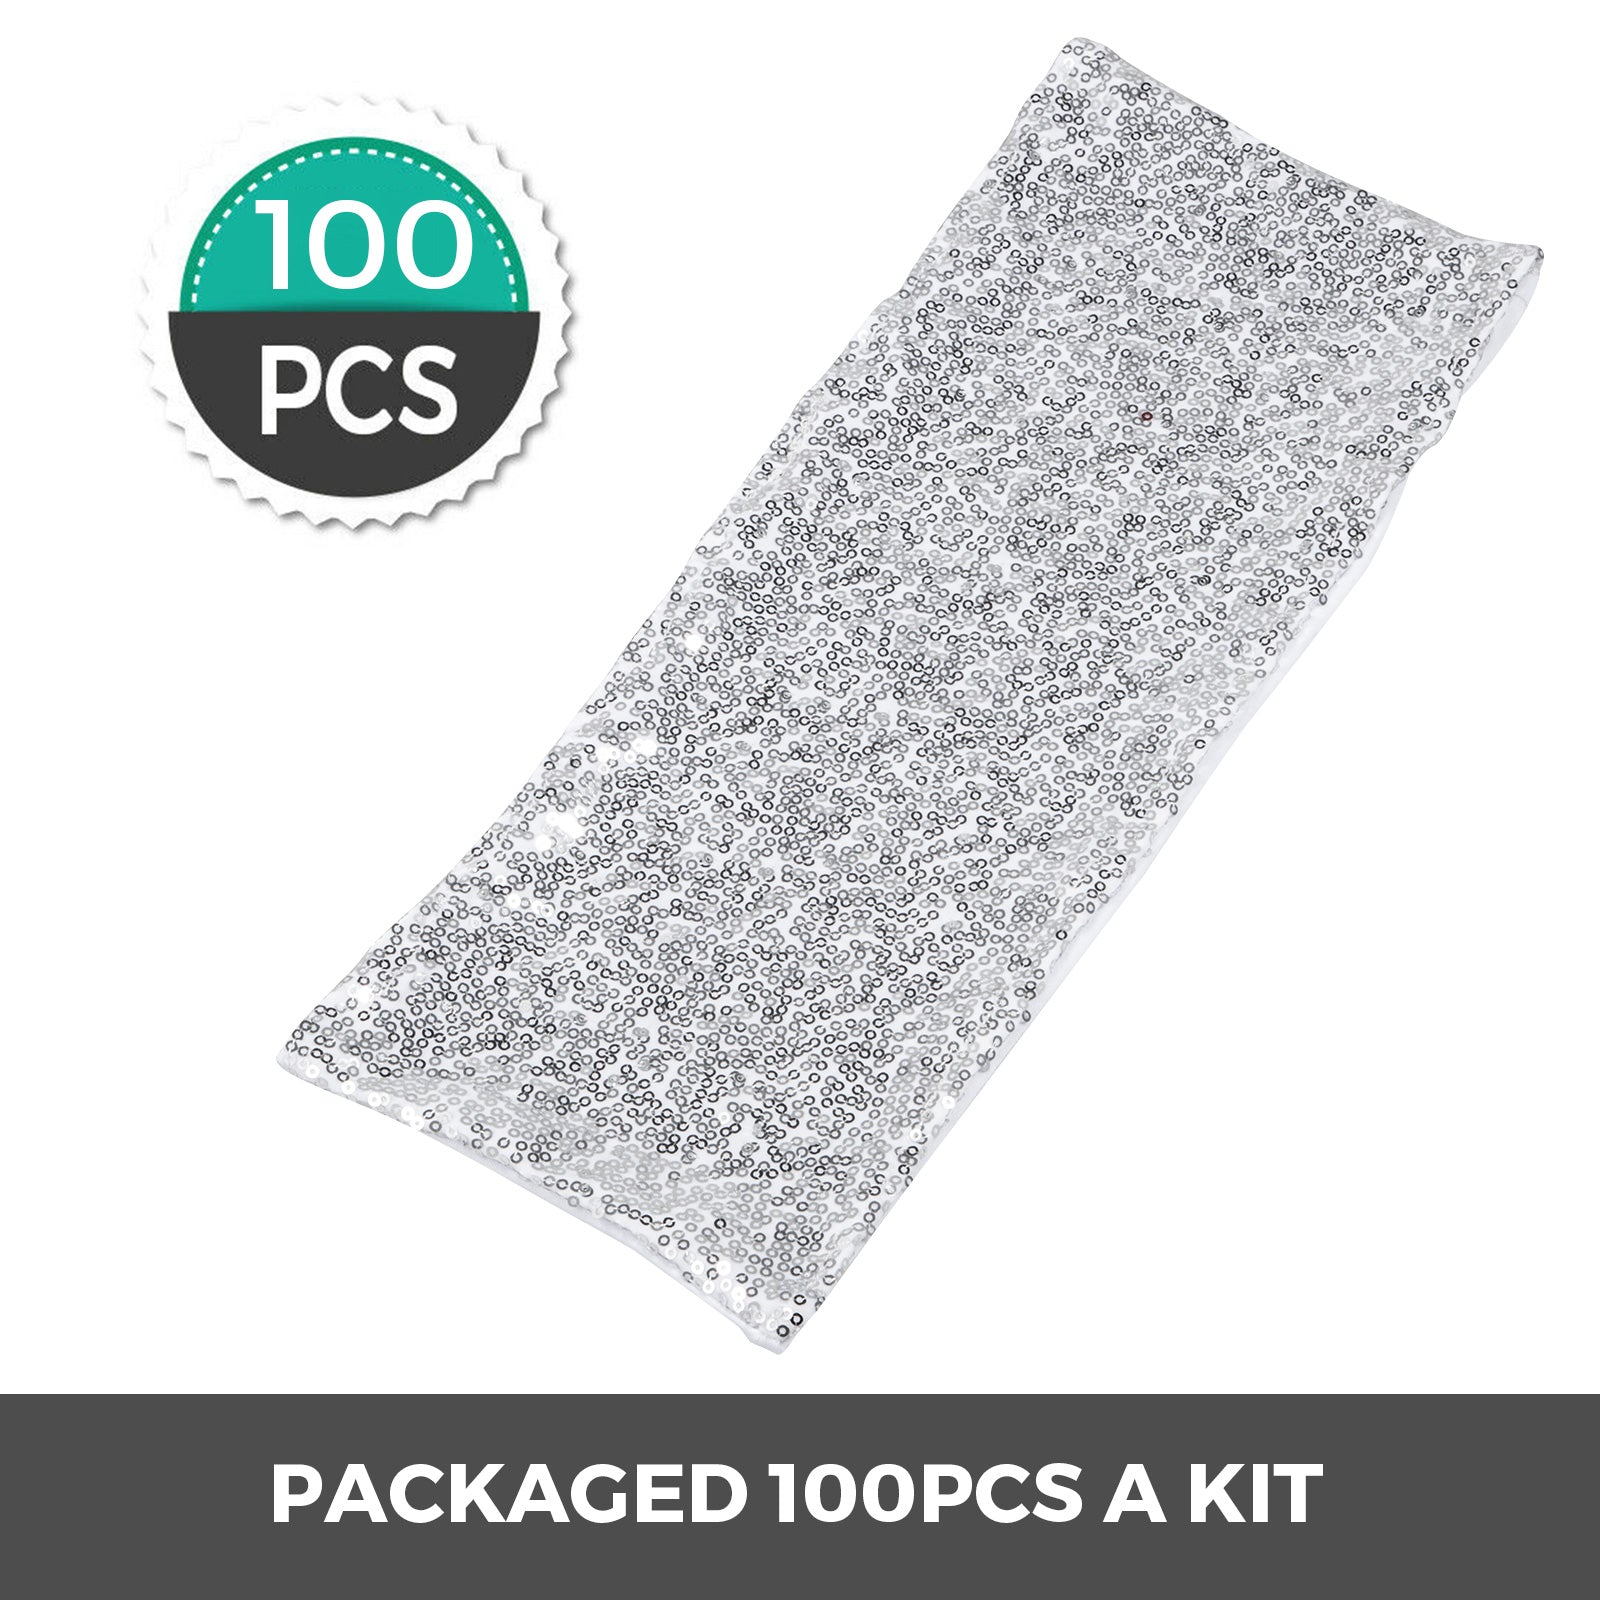 100pcs Spandex Stretch Chair Cover Sashes Band Silver Satin Polyester Sequin